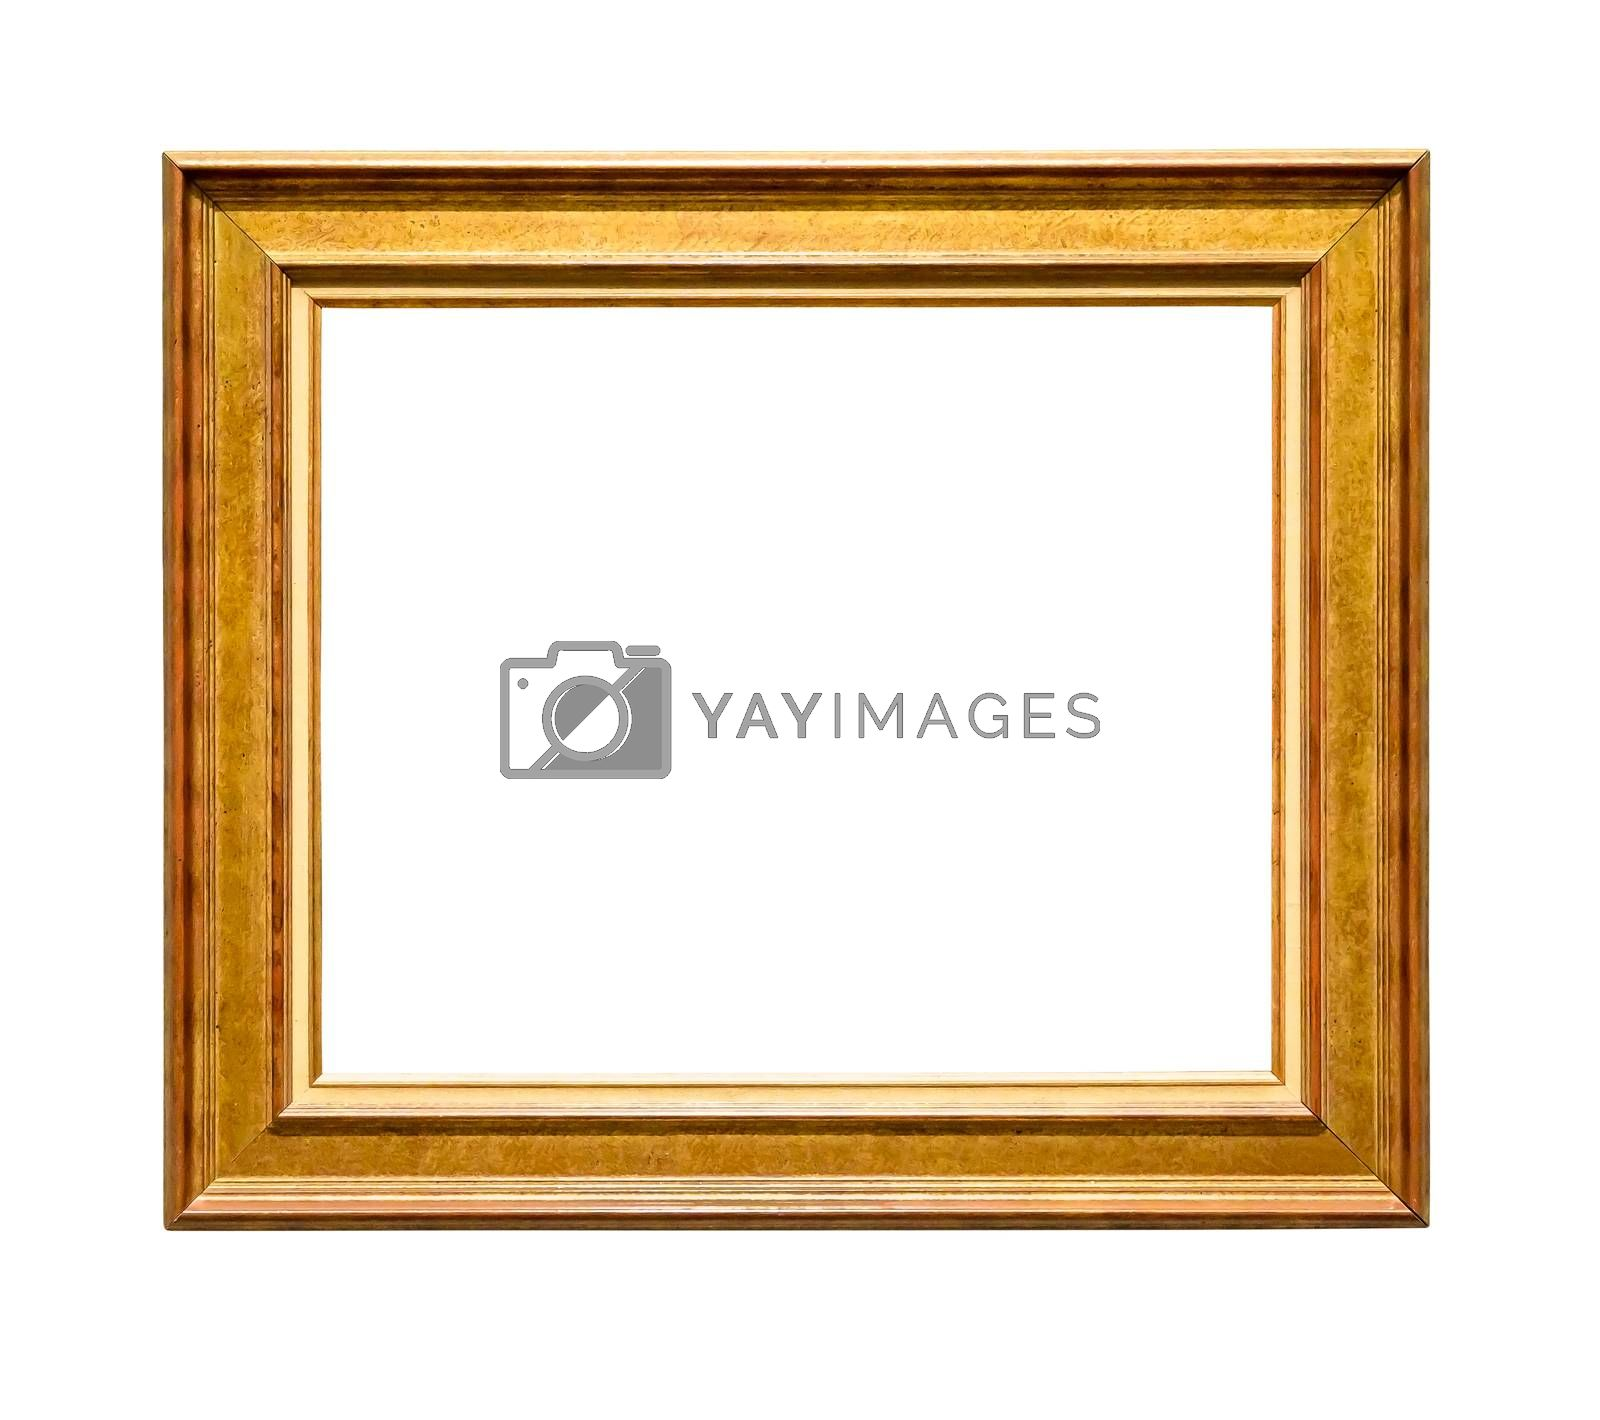 Royalty free image of Wooden decorative picture frame with golden insets on white background by mkos83